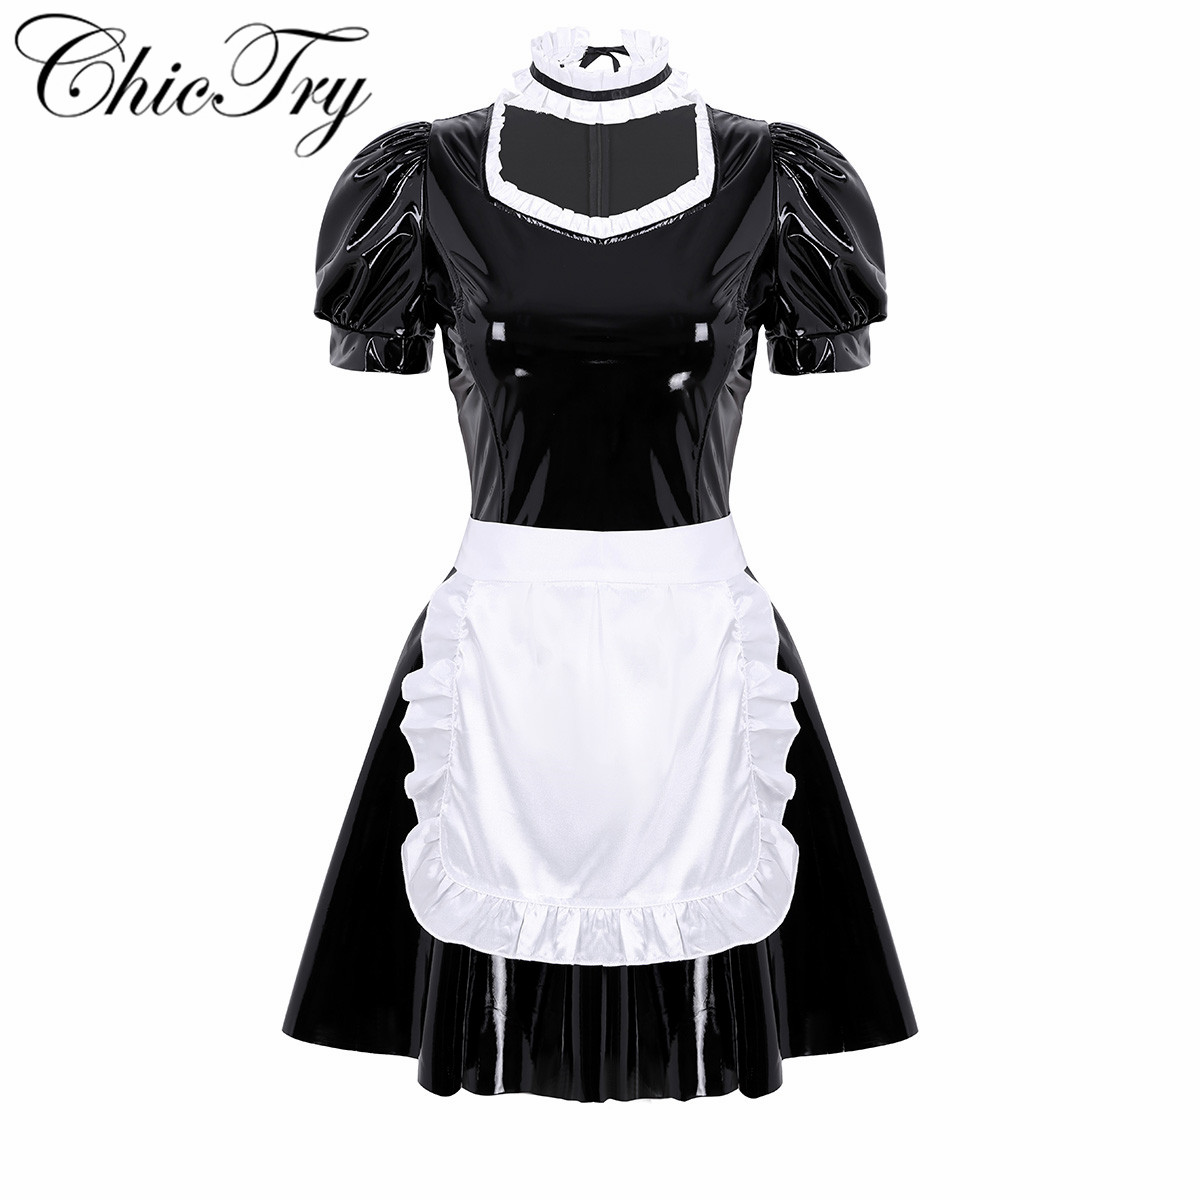 Women Adult French Maid Cosplay Costume Maxi Fancy Dress Apron Headpiece Outfit